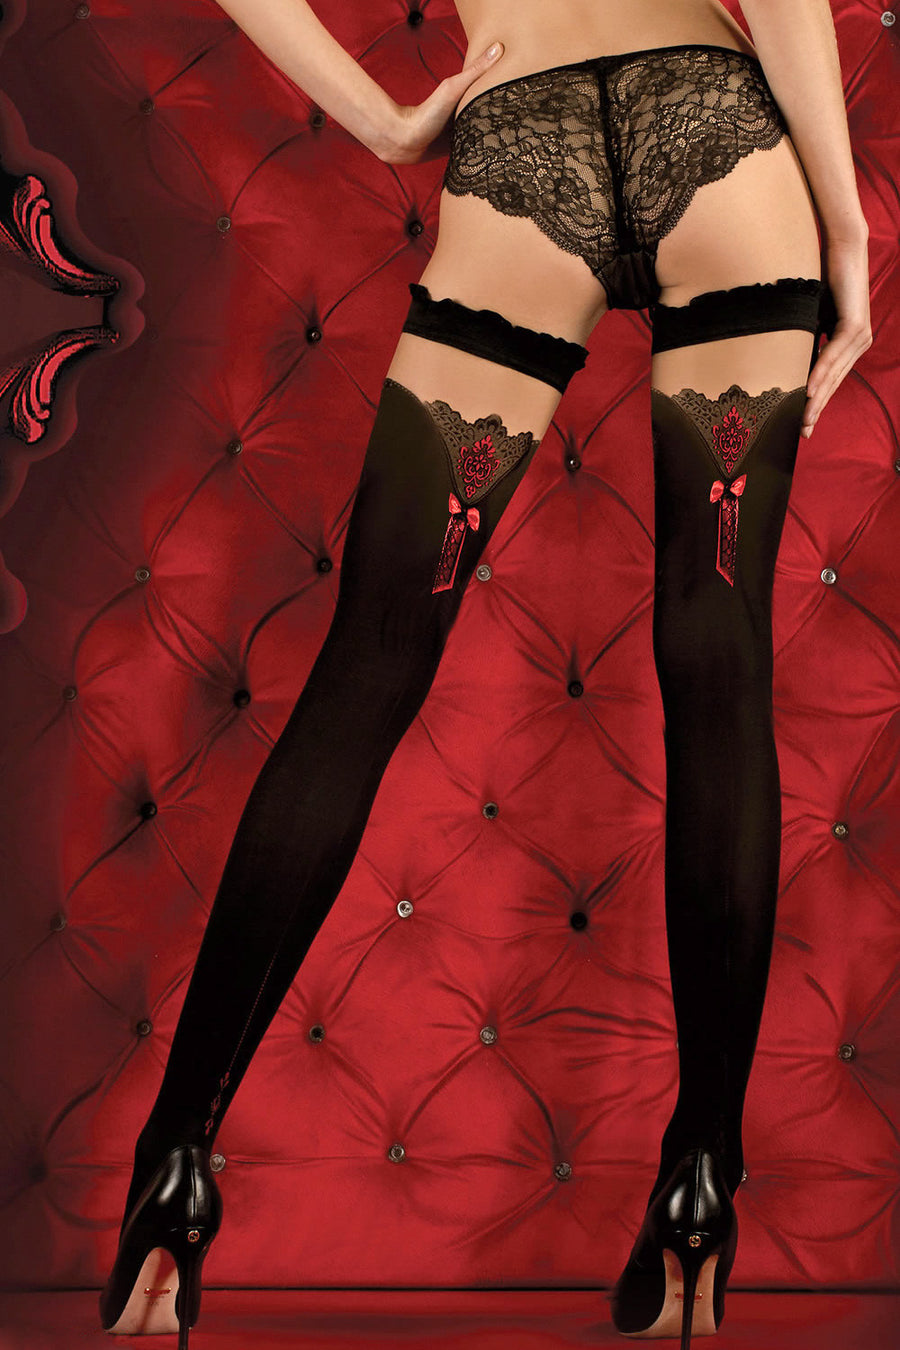 Ballerina Red Bow Opaque Black Hold Ups - Mayfair Stockings